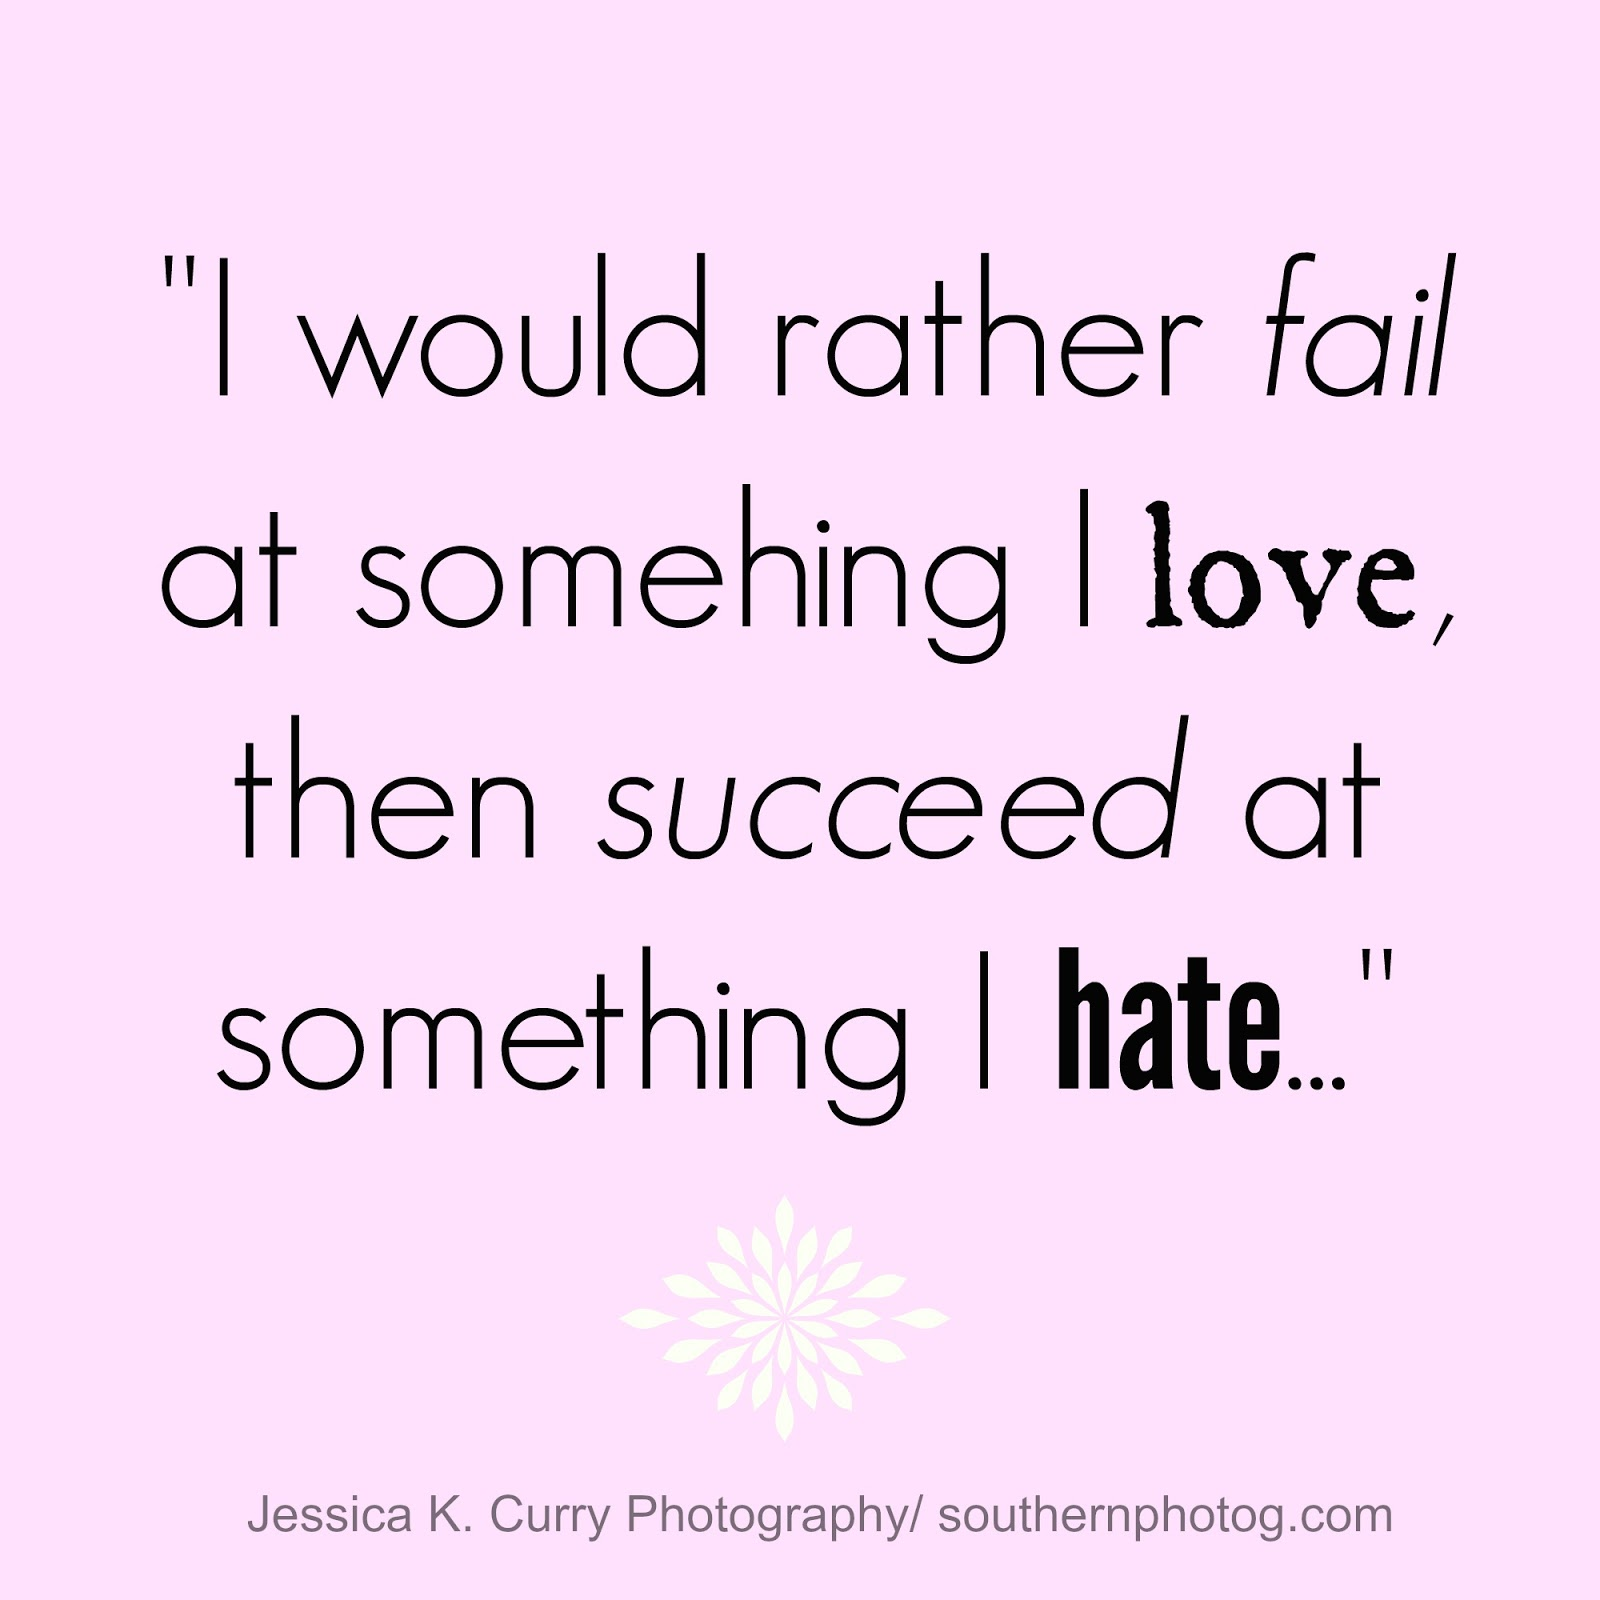 Quotes Photography Jessica Kcurry Photography My Favorite Quote As A Photographer.